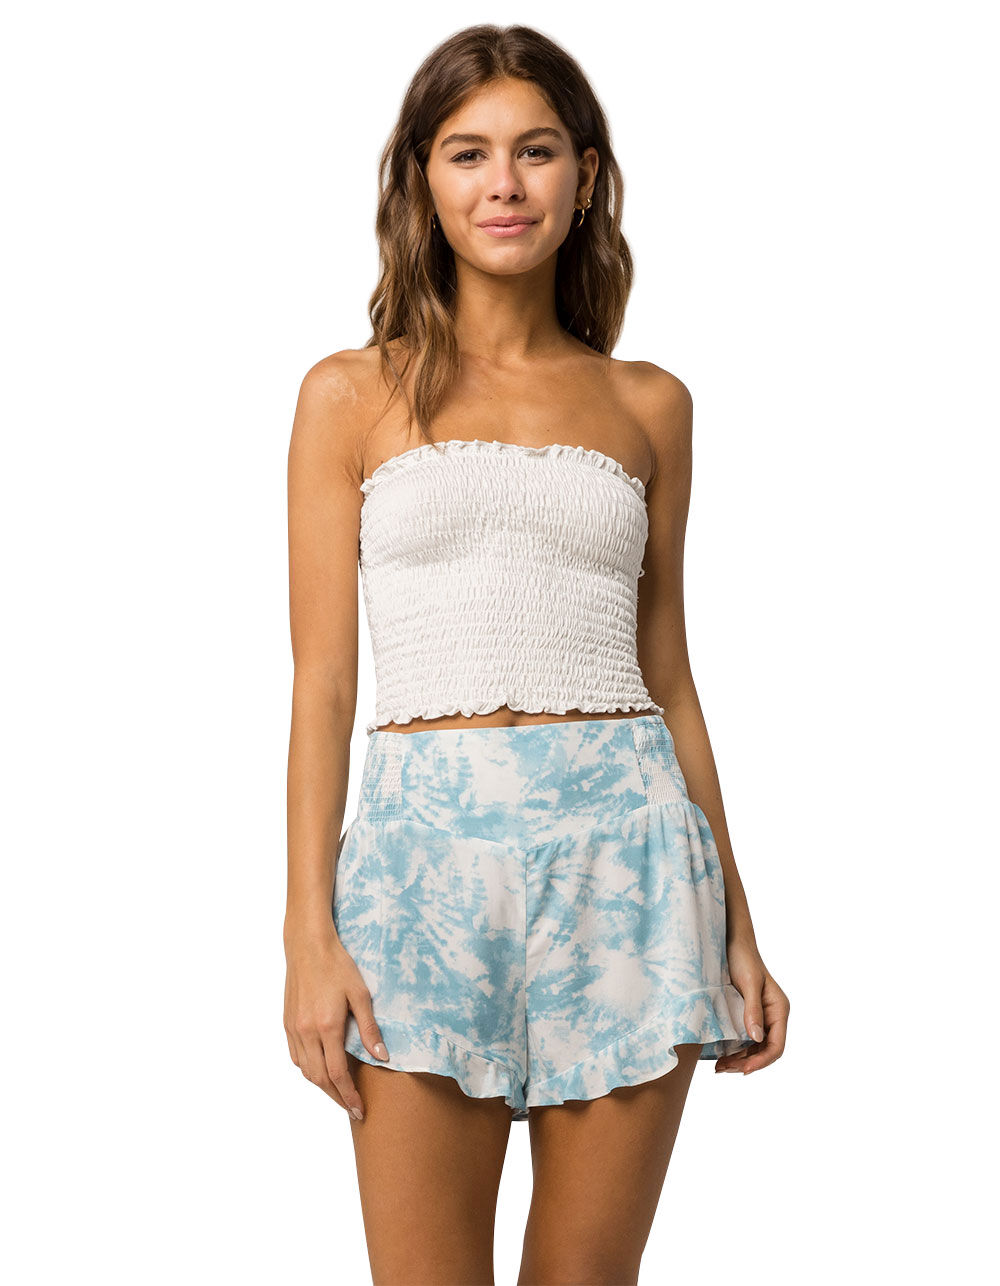 SKY AND SPARROW RUFFLE TIE DYE SHORTS